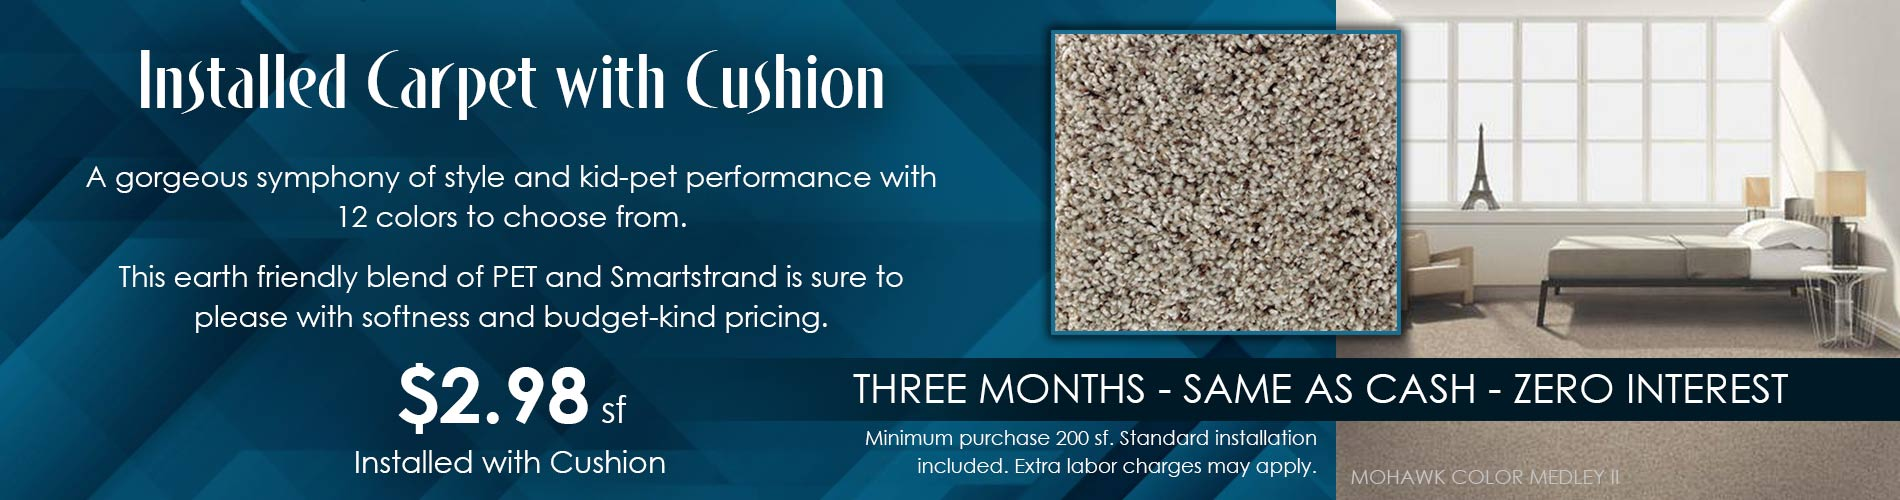 Installed carpet with cushion $2.98 sq.ft.